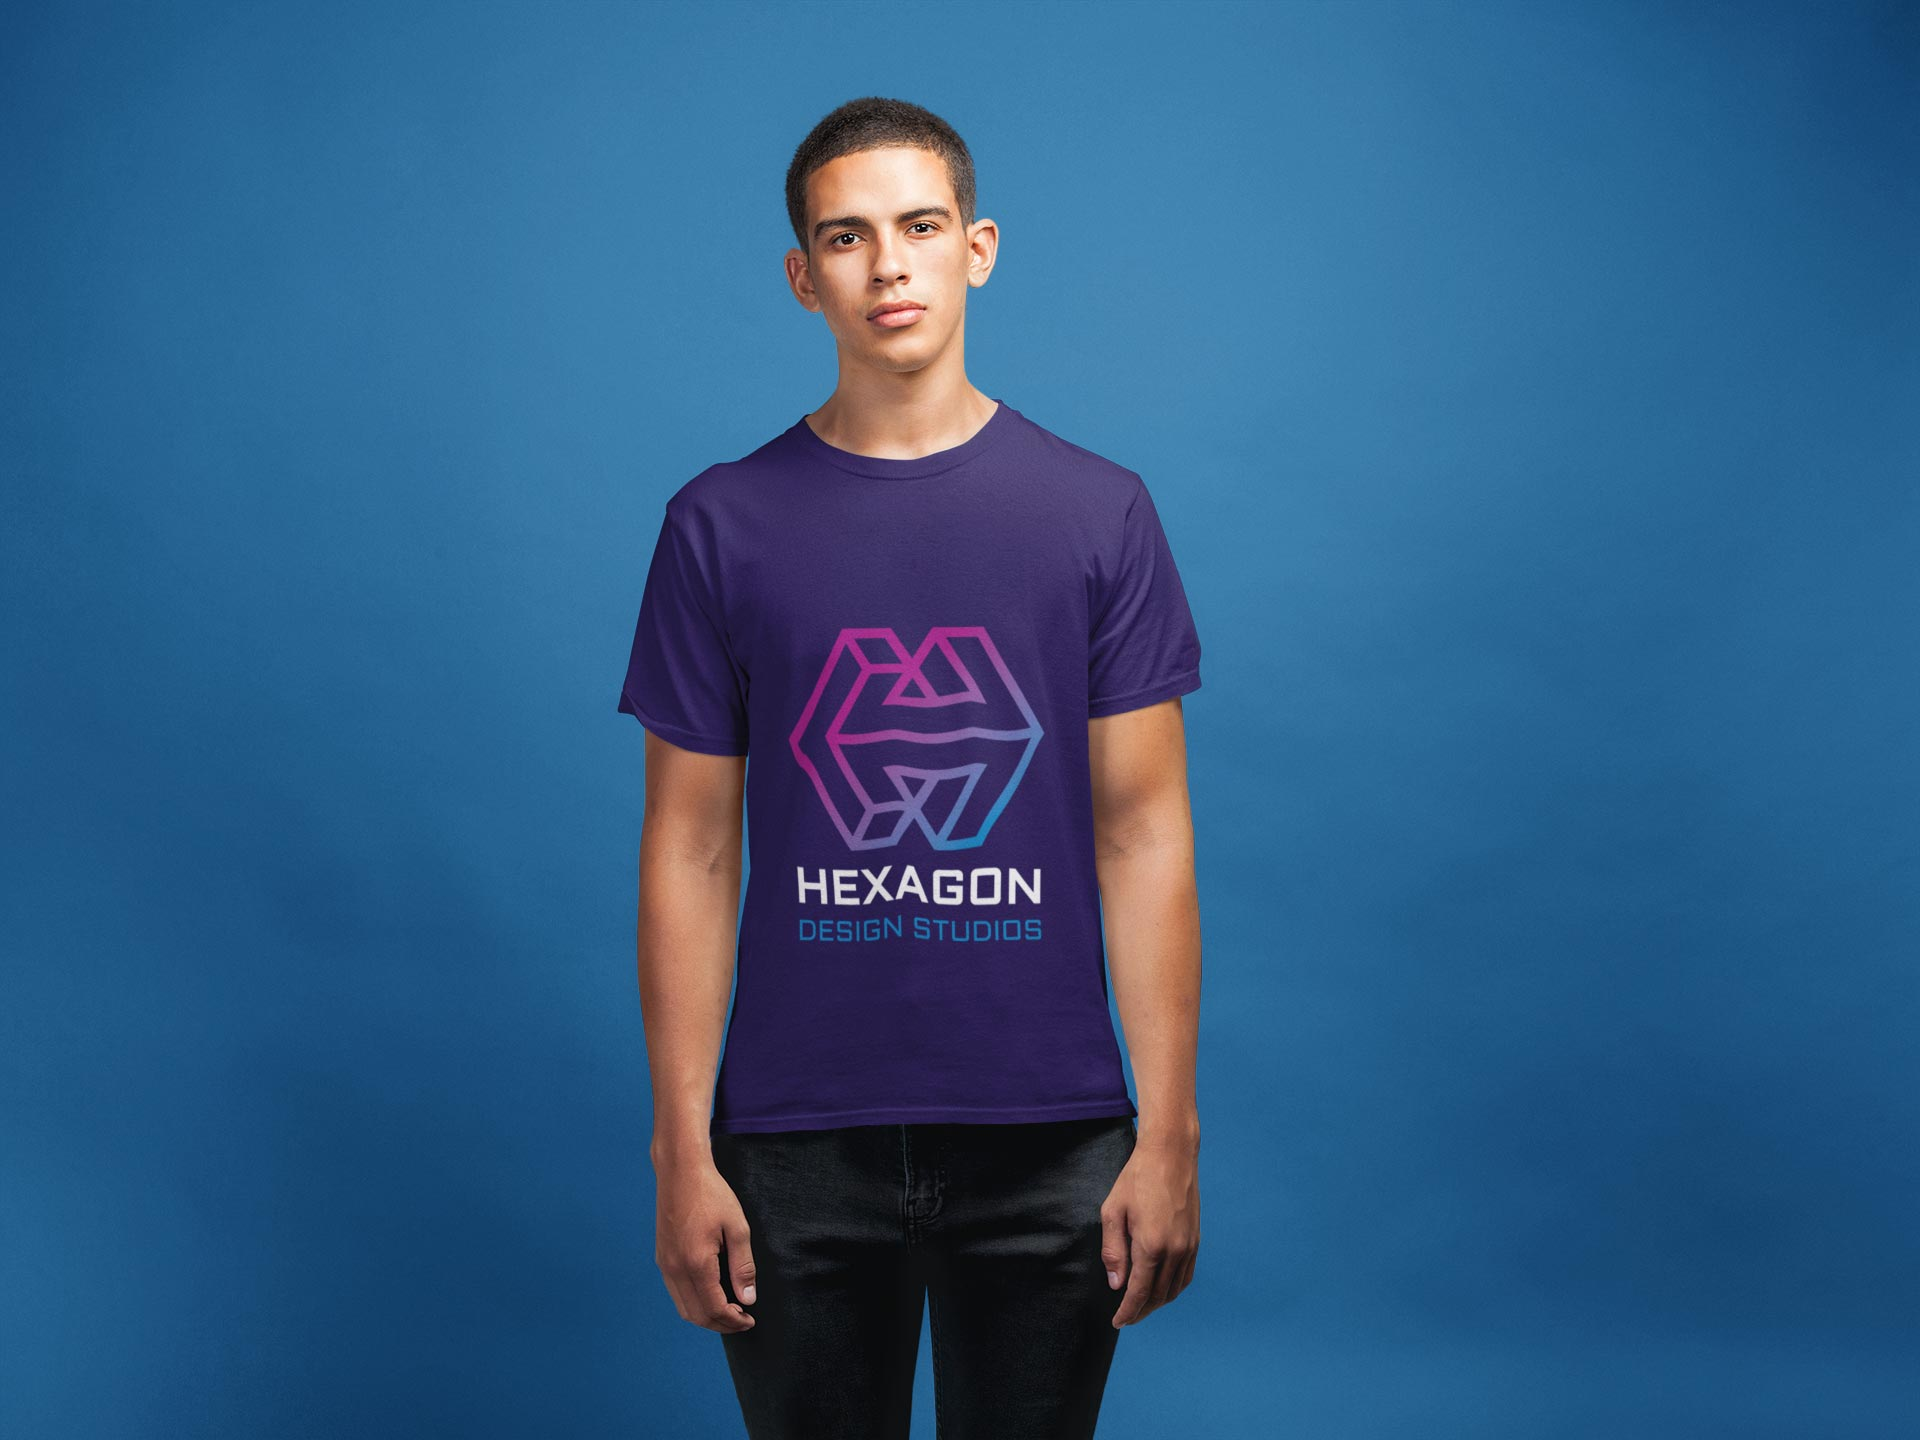 Hexagon Design Studios Logo Design on Tshirt